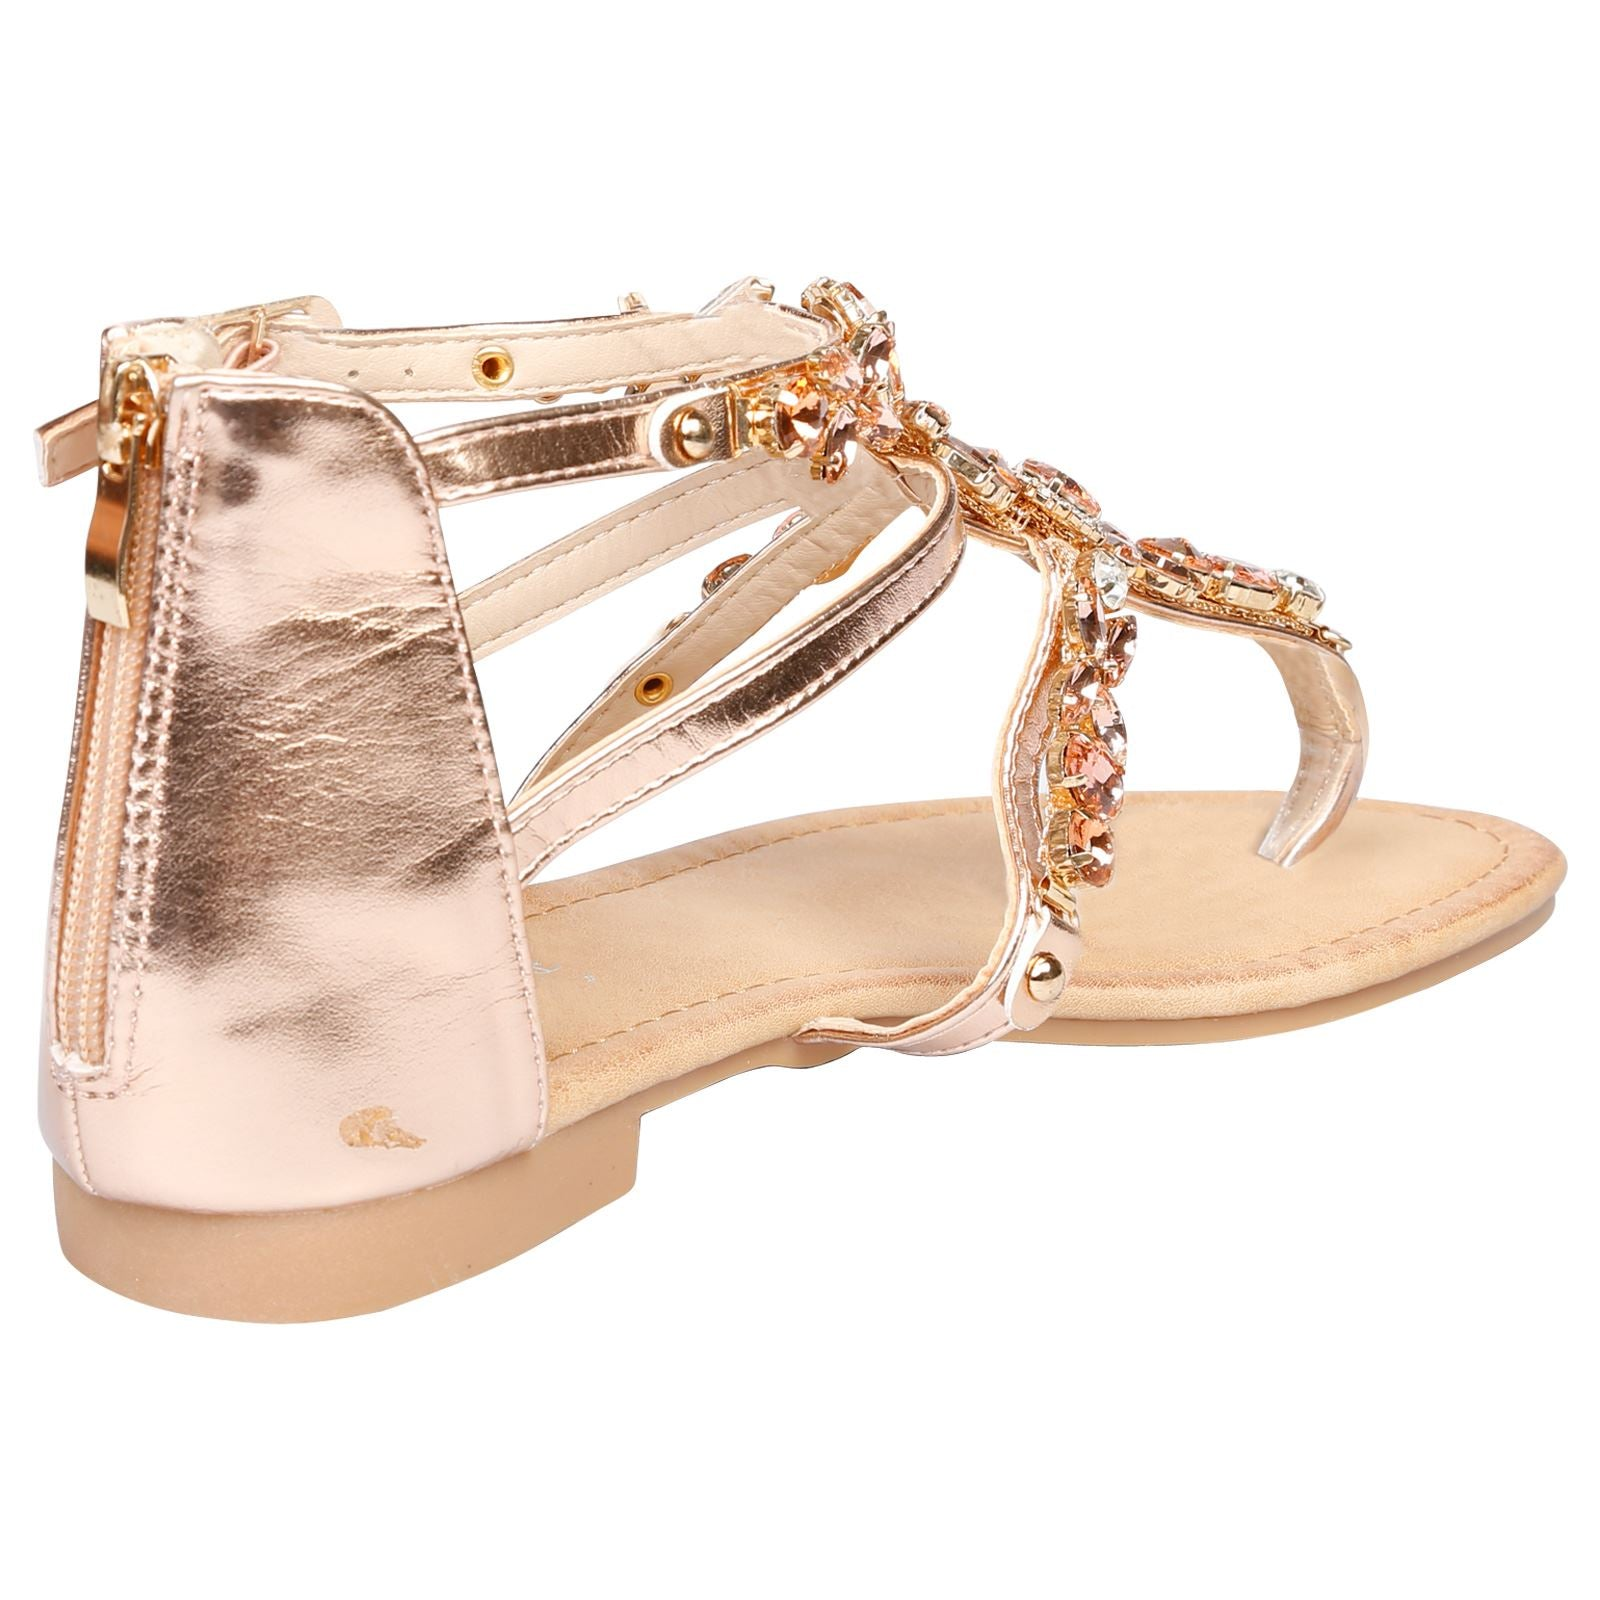 Celia Jewelled Flat Sandals in Rose Gold - Feet First Fashion